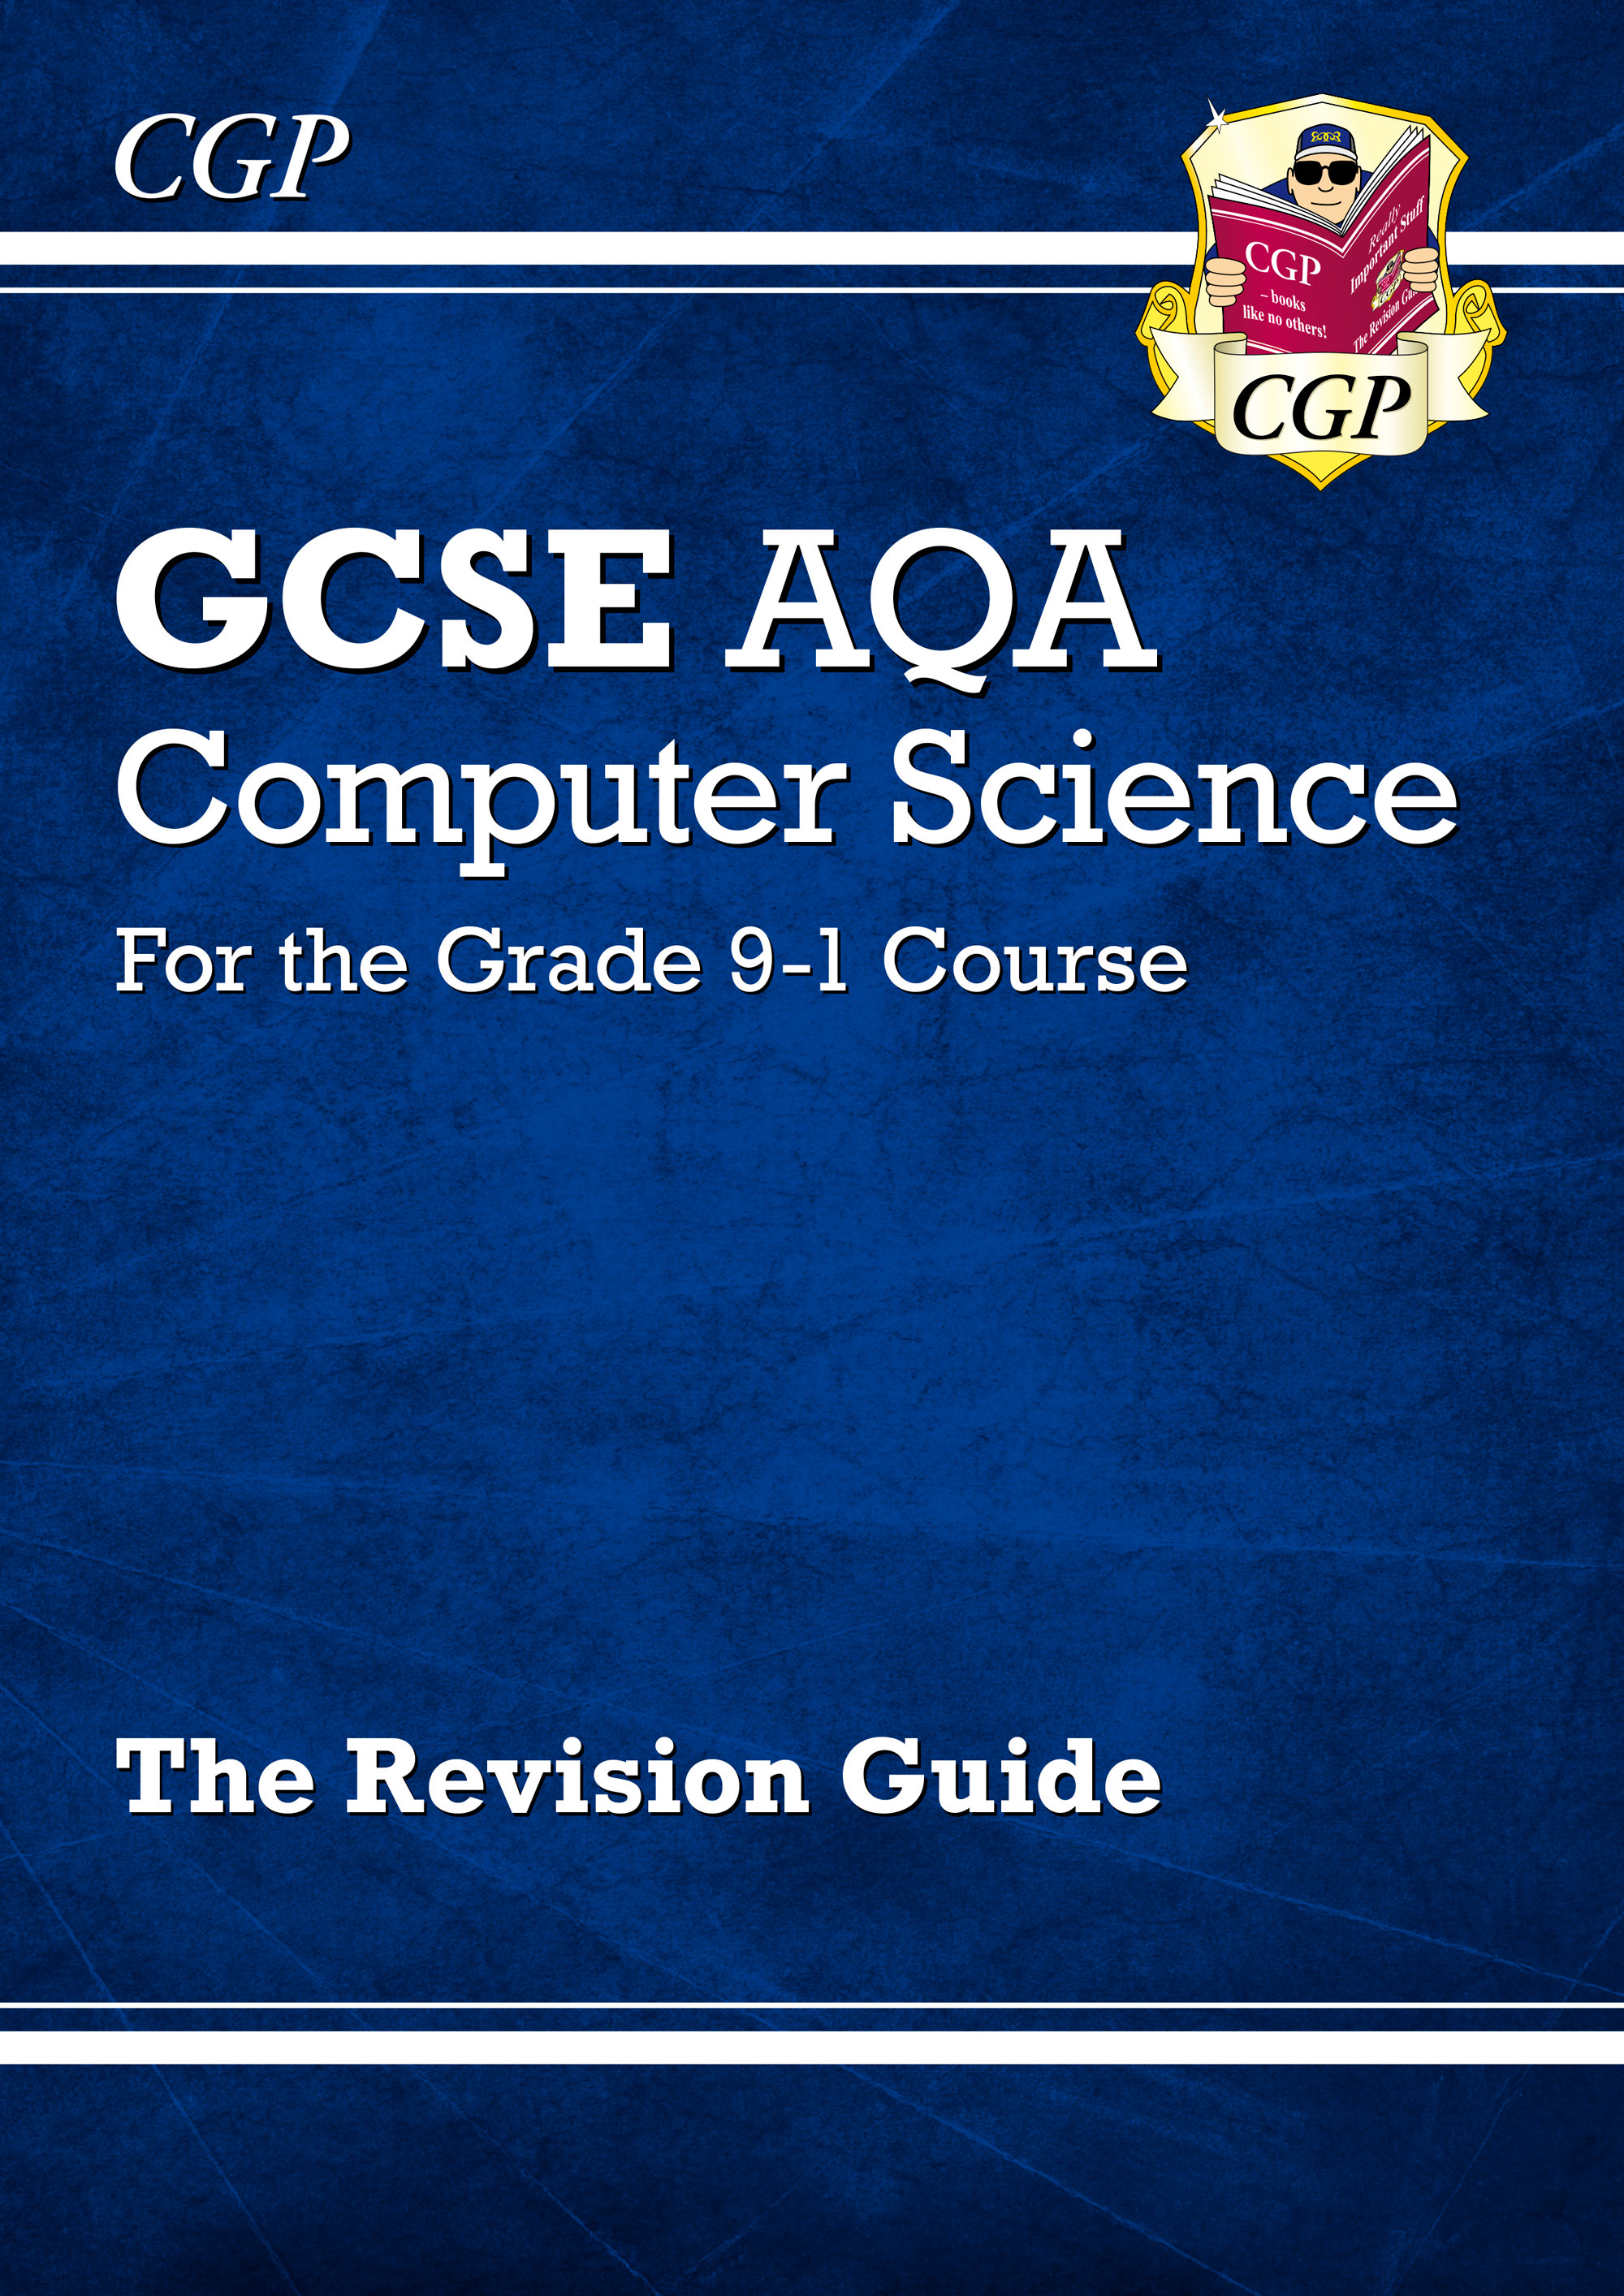 COAR41DK - New GCSE Computer Science AQA Revision Guide - for the Grade 9-1 Course